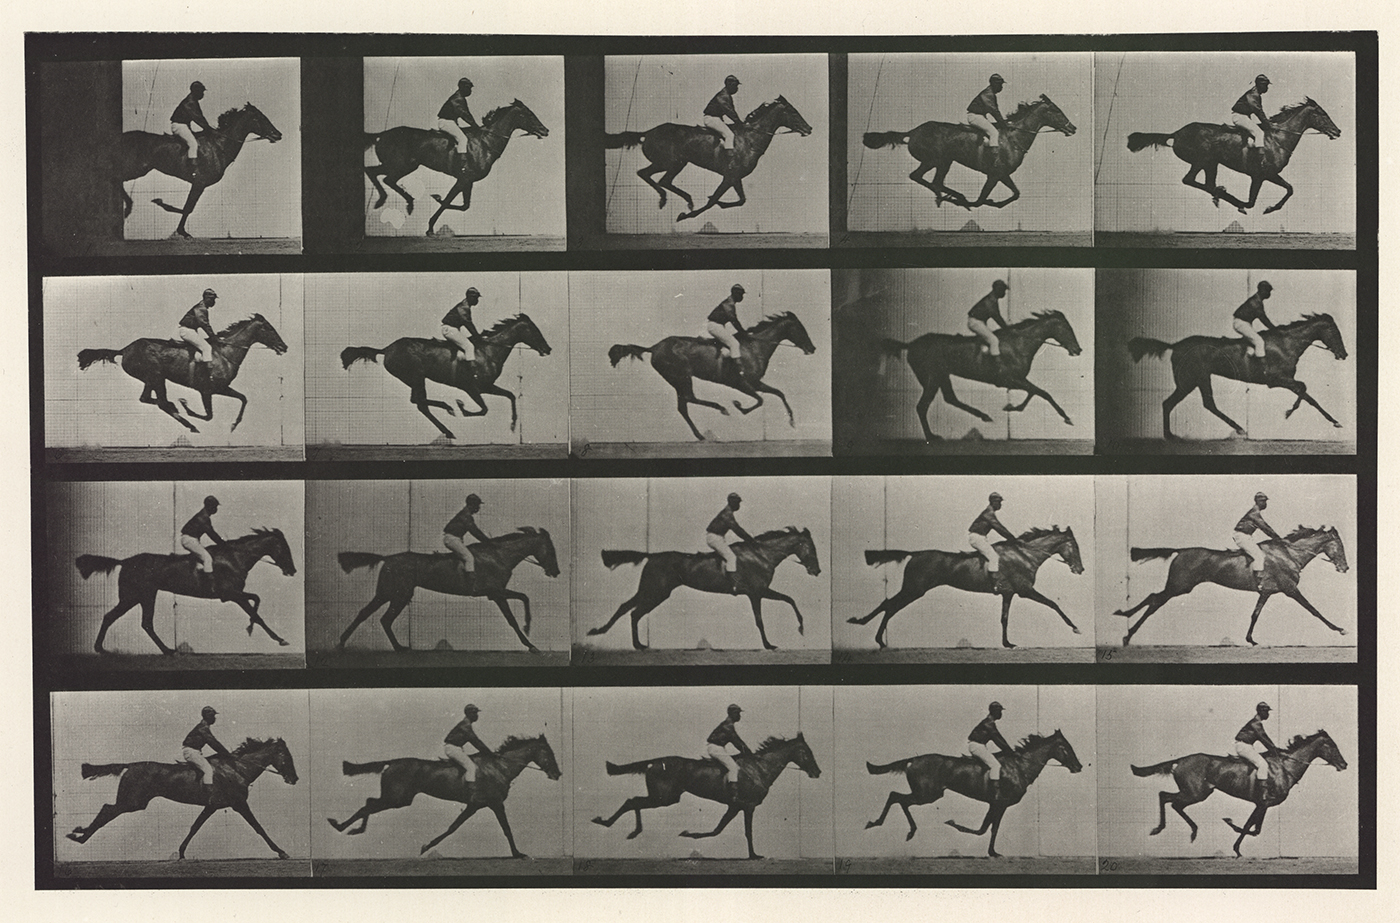 Eadweard Muybridge, Animal Locomotion, plate 627, 1880s